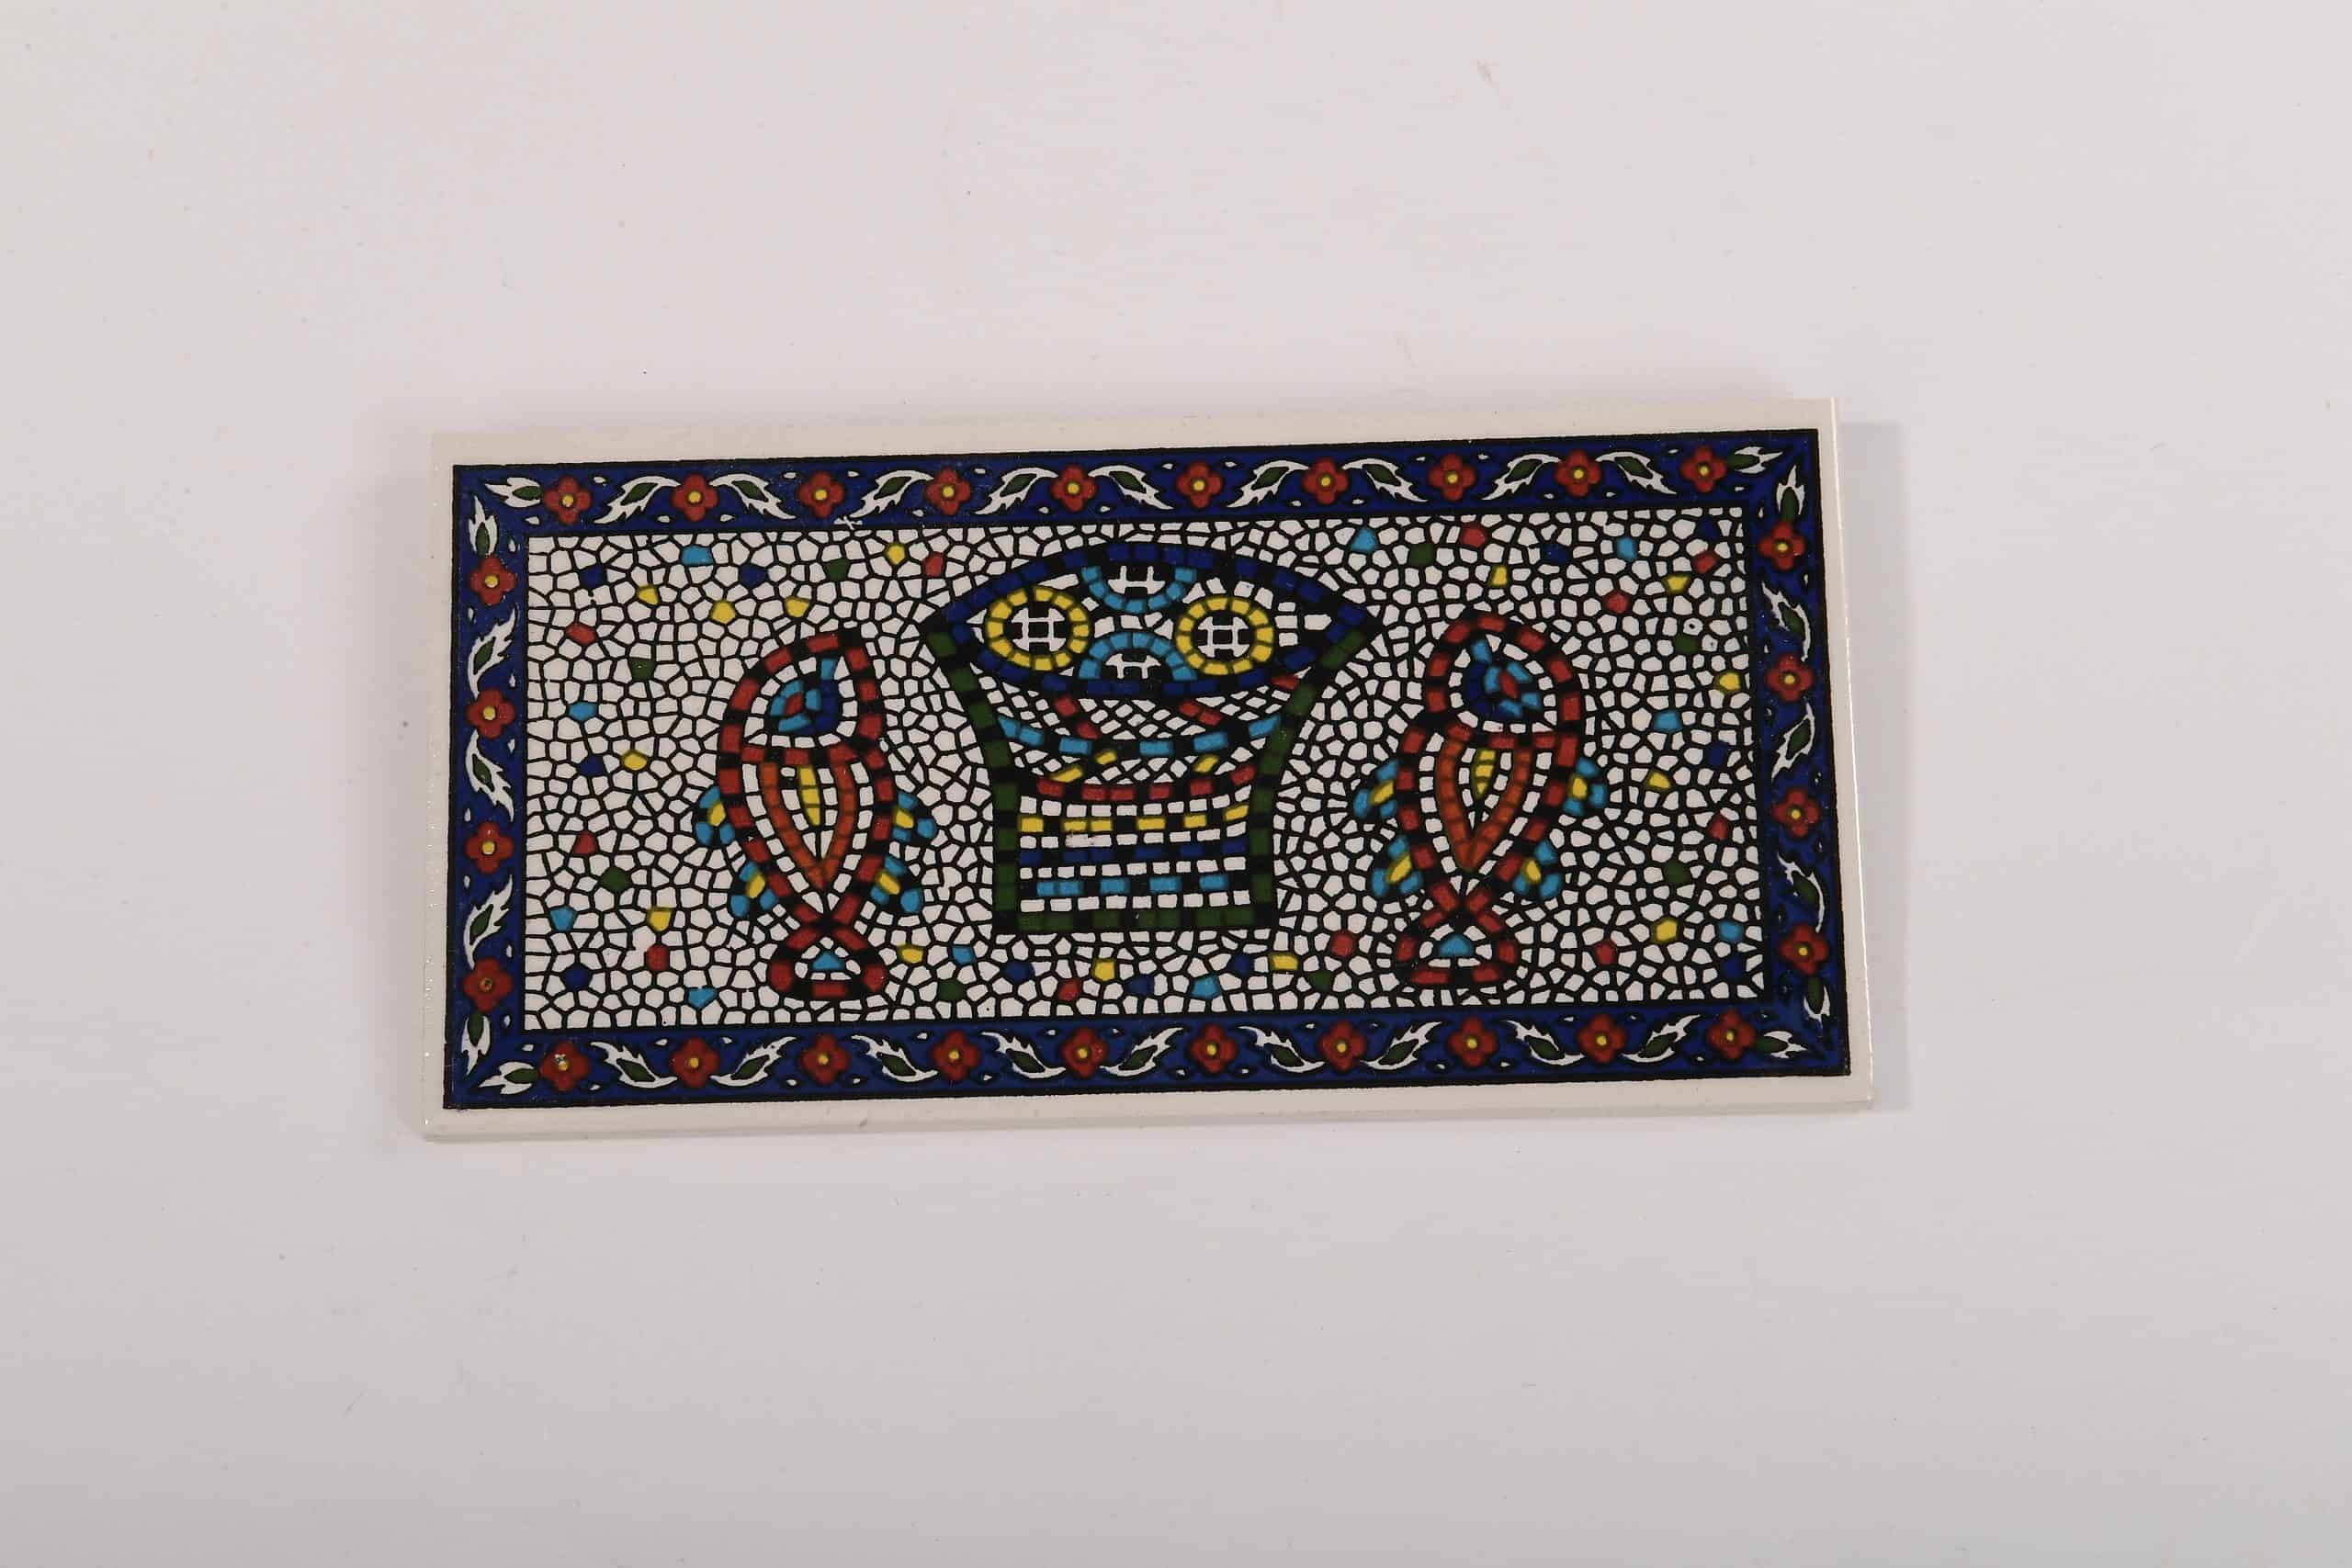 Armenian Ceramic Tabgha Mosaic Decorative Tile